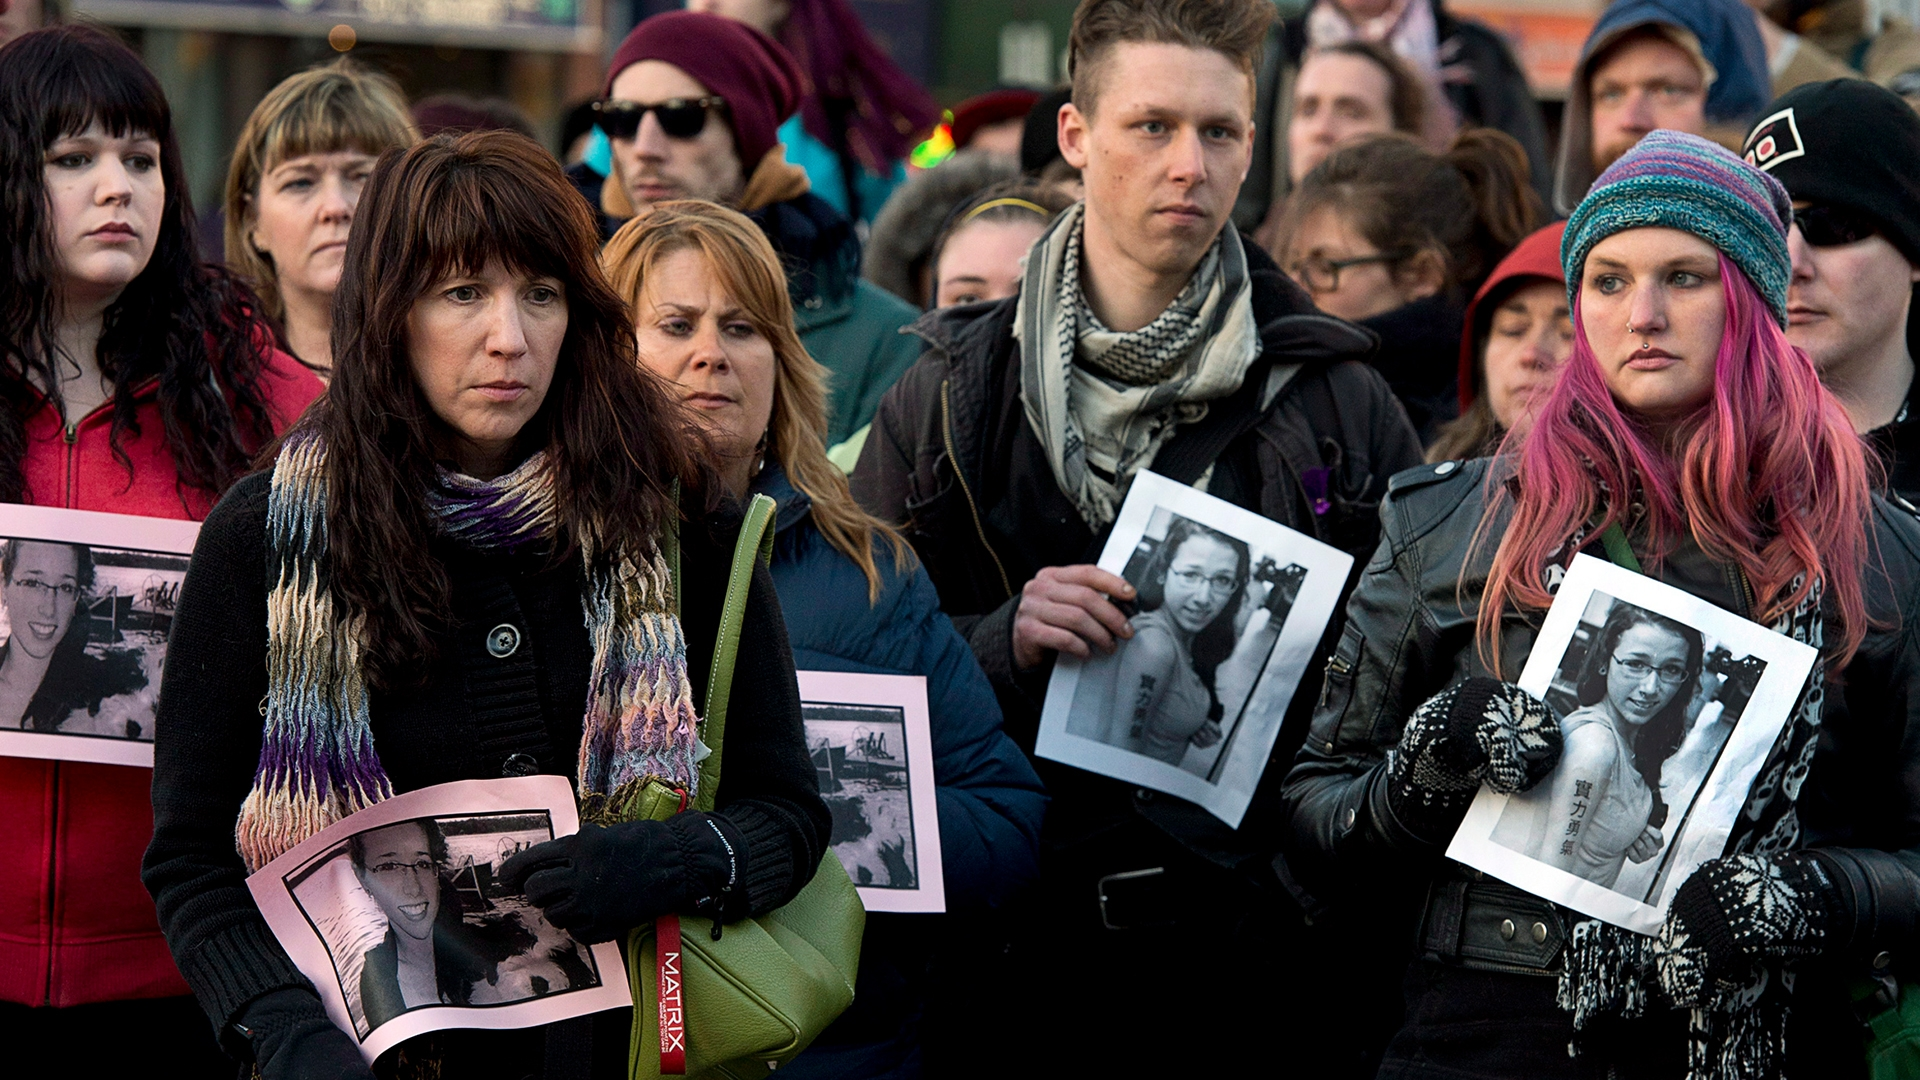 People attend a vigil in memory of Rehtaeh at Halifax's Victoria Park on April 11, 2013. (Andrew Vaughan/Canadian Press)